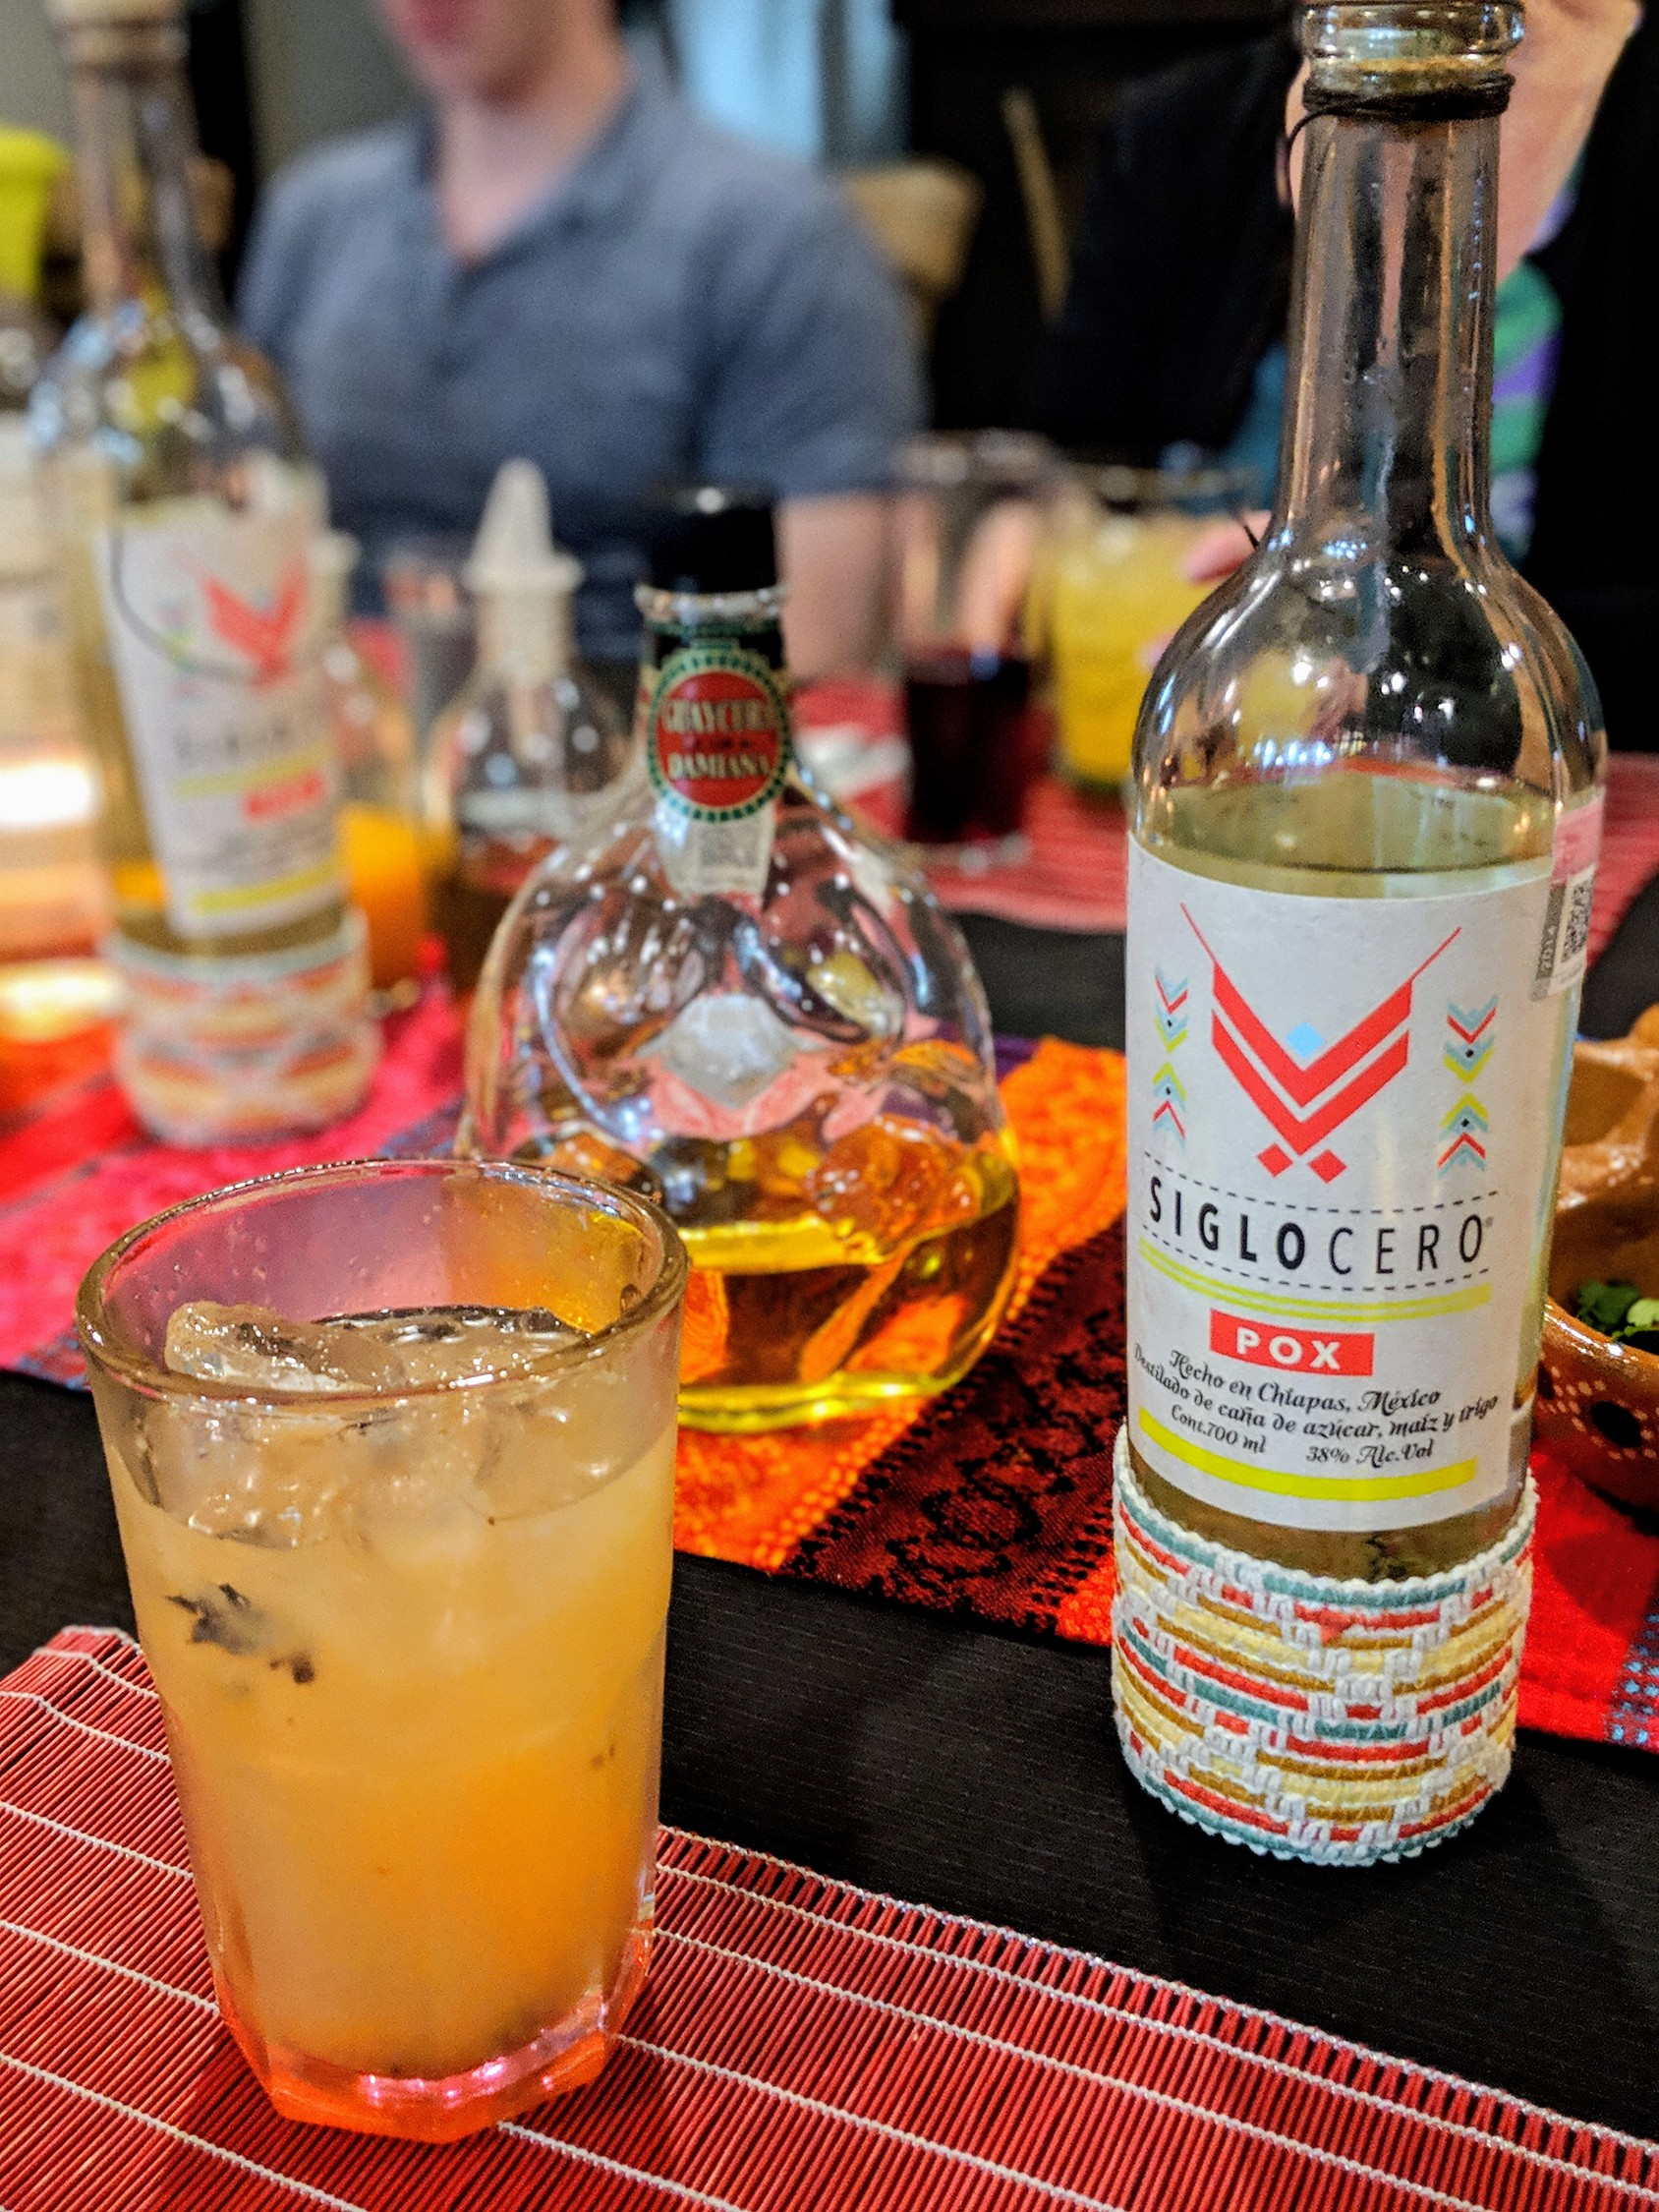 Mexican spirit pox on a table with other cocktails.